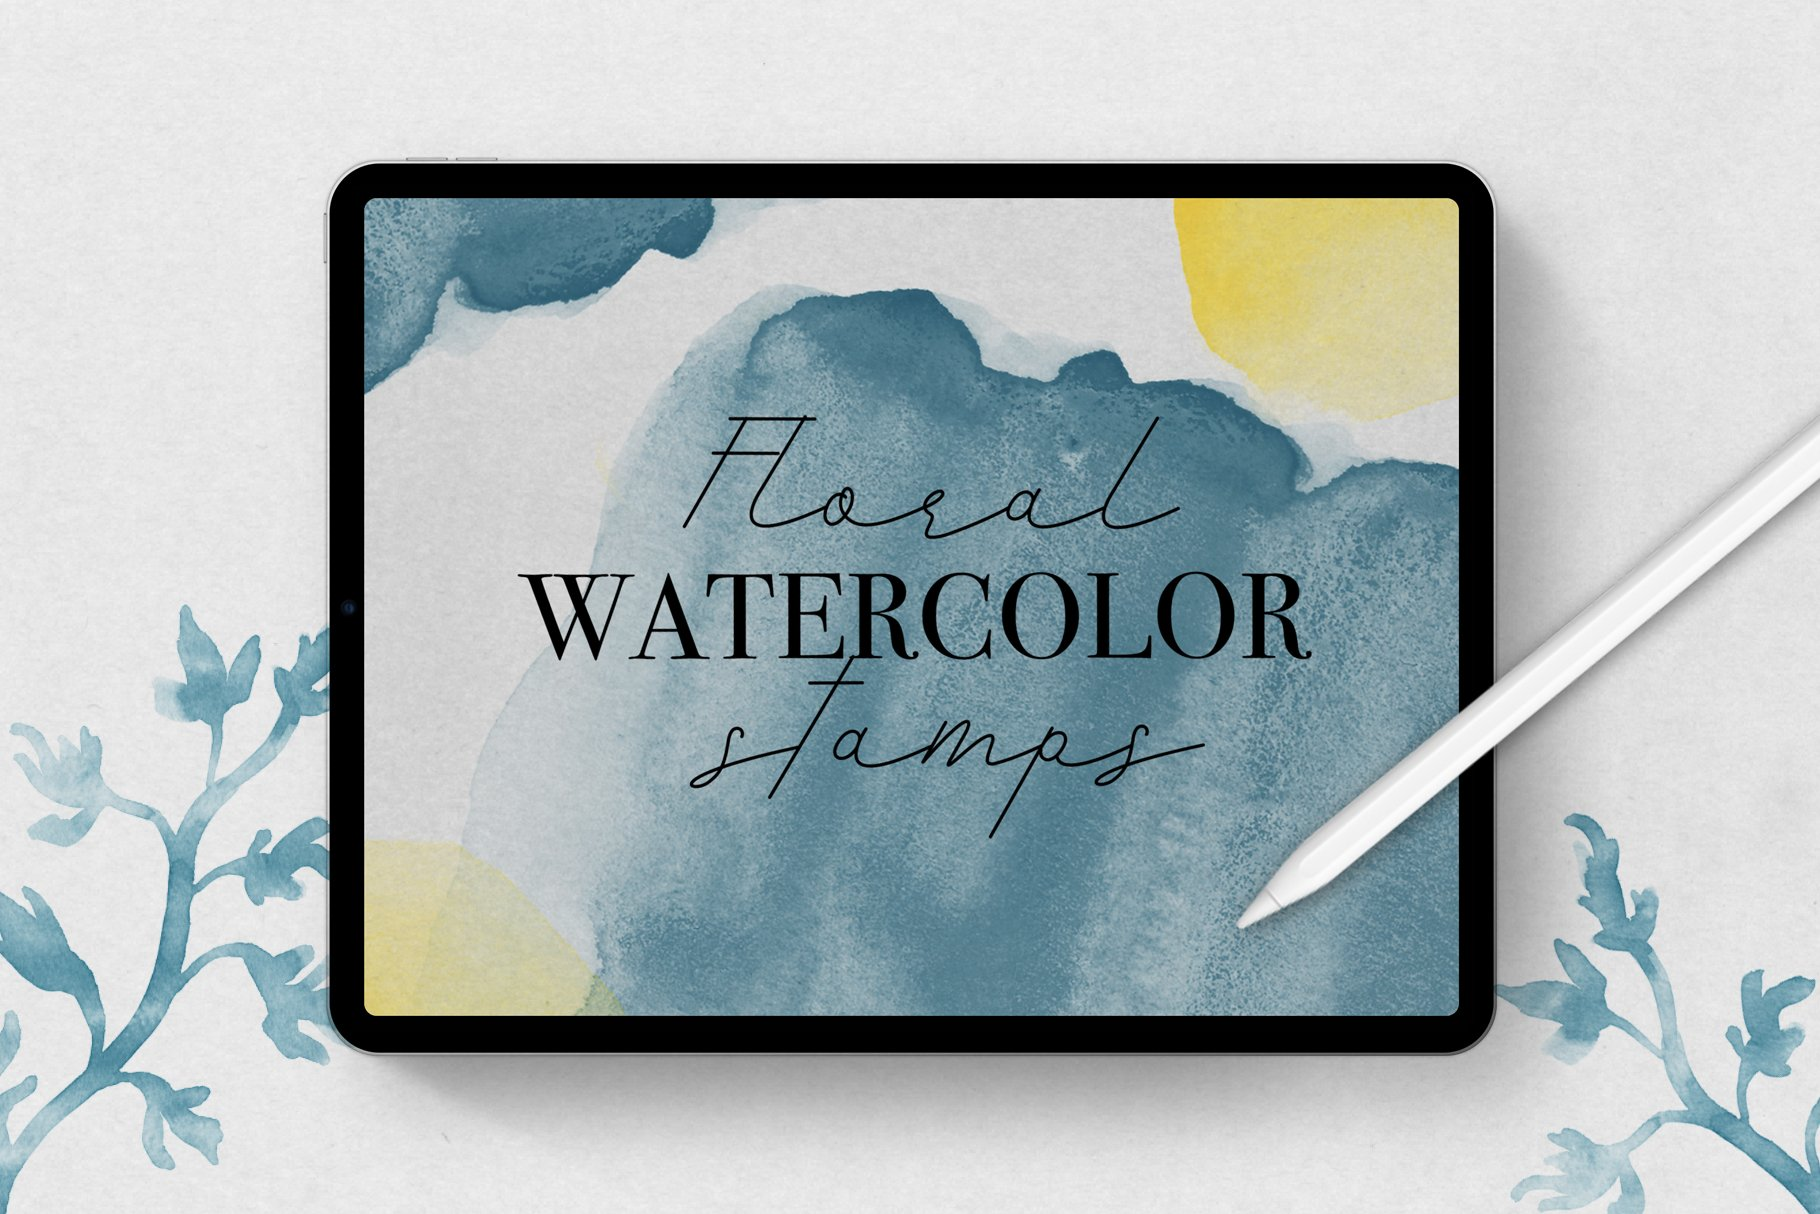 Watercolor Stamp Brushes For Procreate